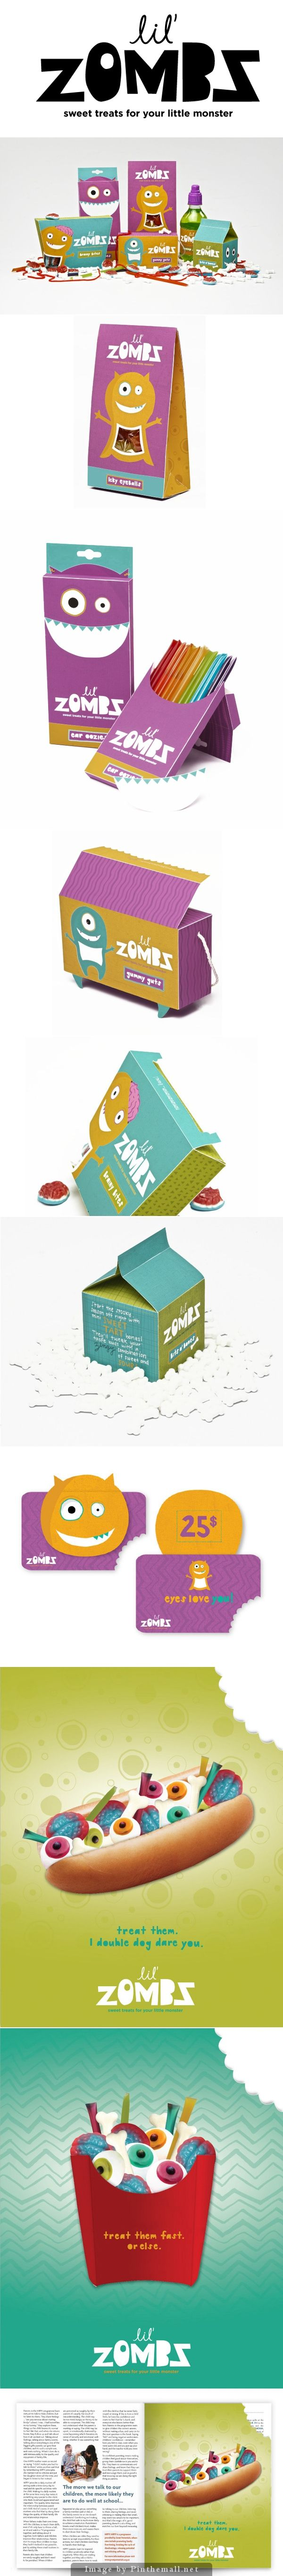 Lil'Zombs just in time for Halloween packaging curated by Packaging Diva PD created via https://www.behance.net/gallery/7199521/lilzombz